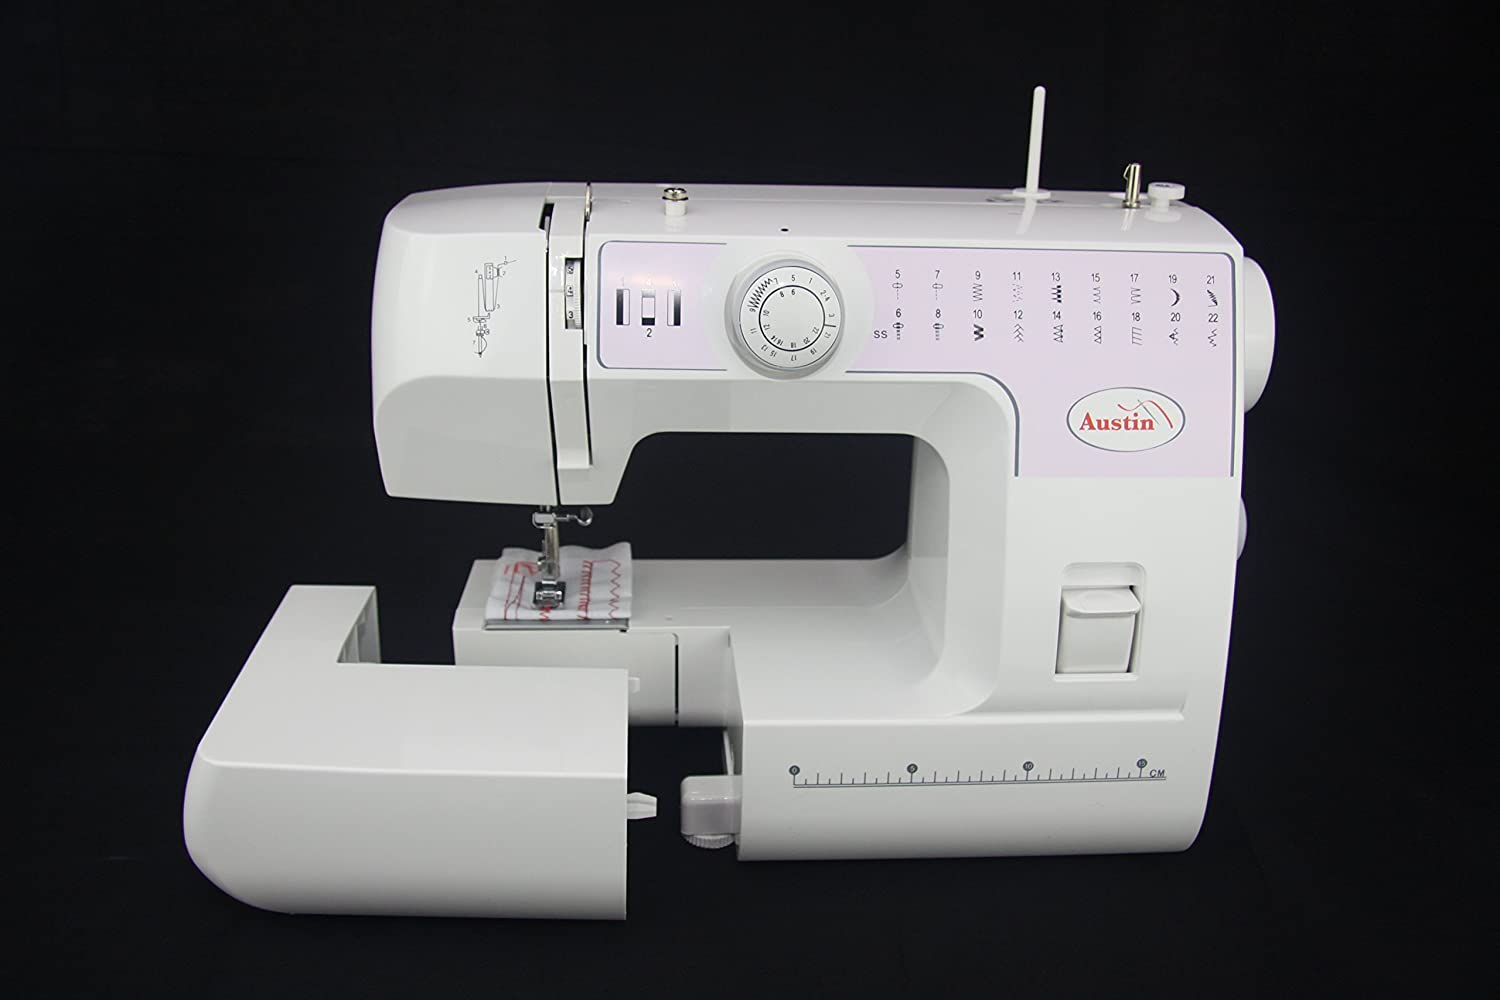 Austin Sewing Machine 22 Auto Stitch Selection, Metal, White, 45 x 35 x 25 cm KP886